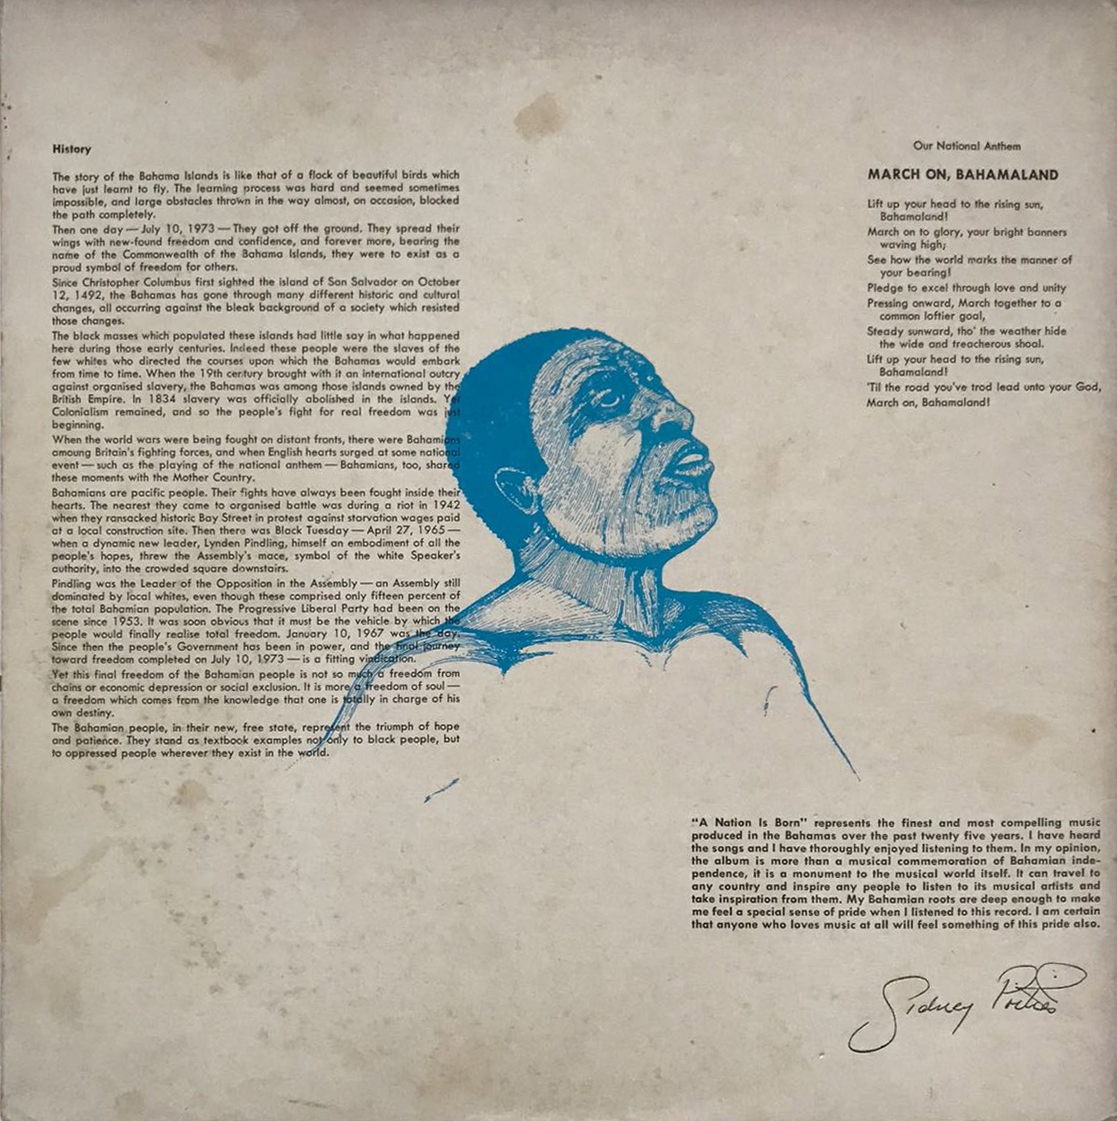 """An Excerpt From the Album art for """"A Nation Is Born"""", featuring the lyrics and history of our national anthem"""